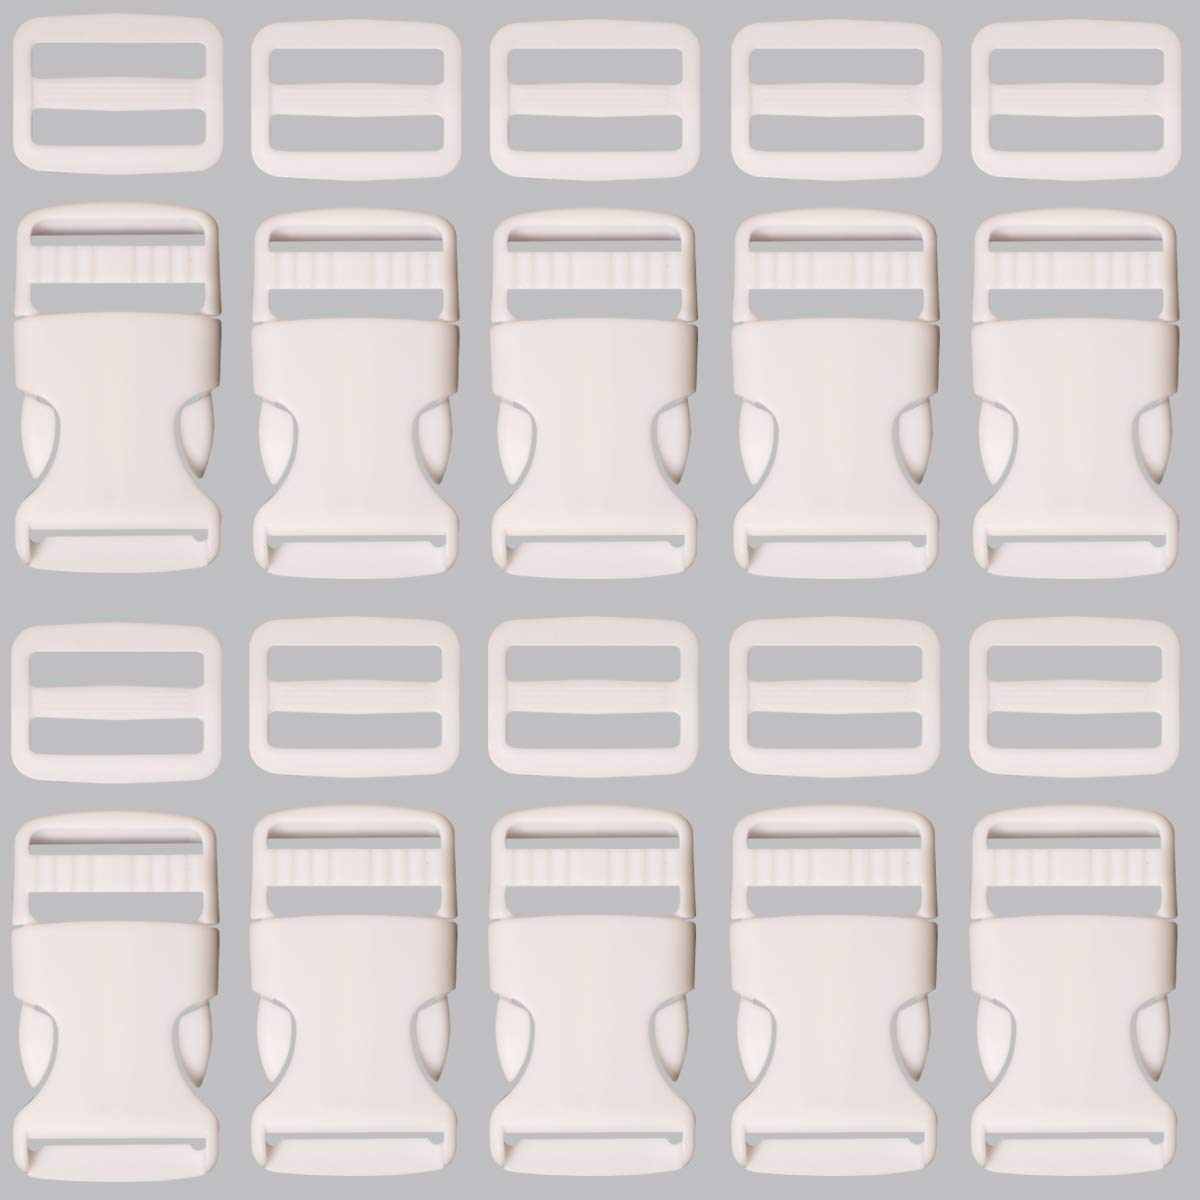 Webbing Strap and Backpack Repair 10 Sets White Plastic Buckle 1 Inch Single Adjust Side Quick Release Replacement Clips with Slides for Dog Collars